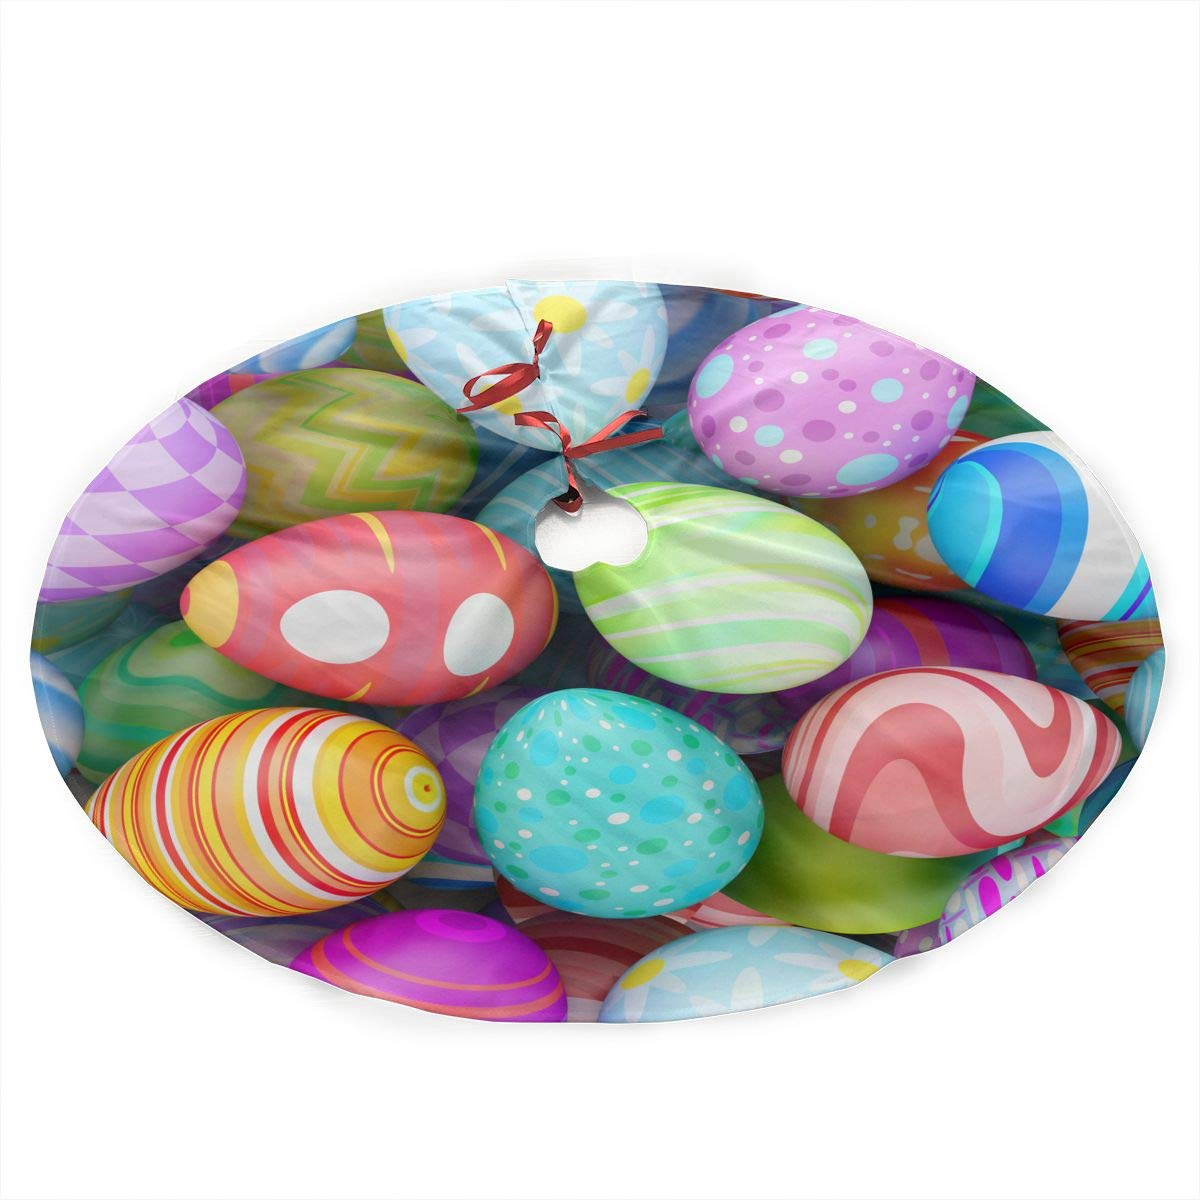 SXKKoin 35.5'' Traditional Holiday Christmas Tree Skirt with Colorful Beautiful Easter Eggs Design